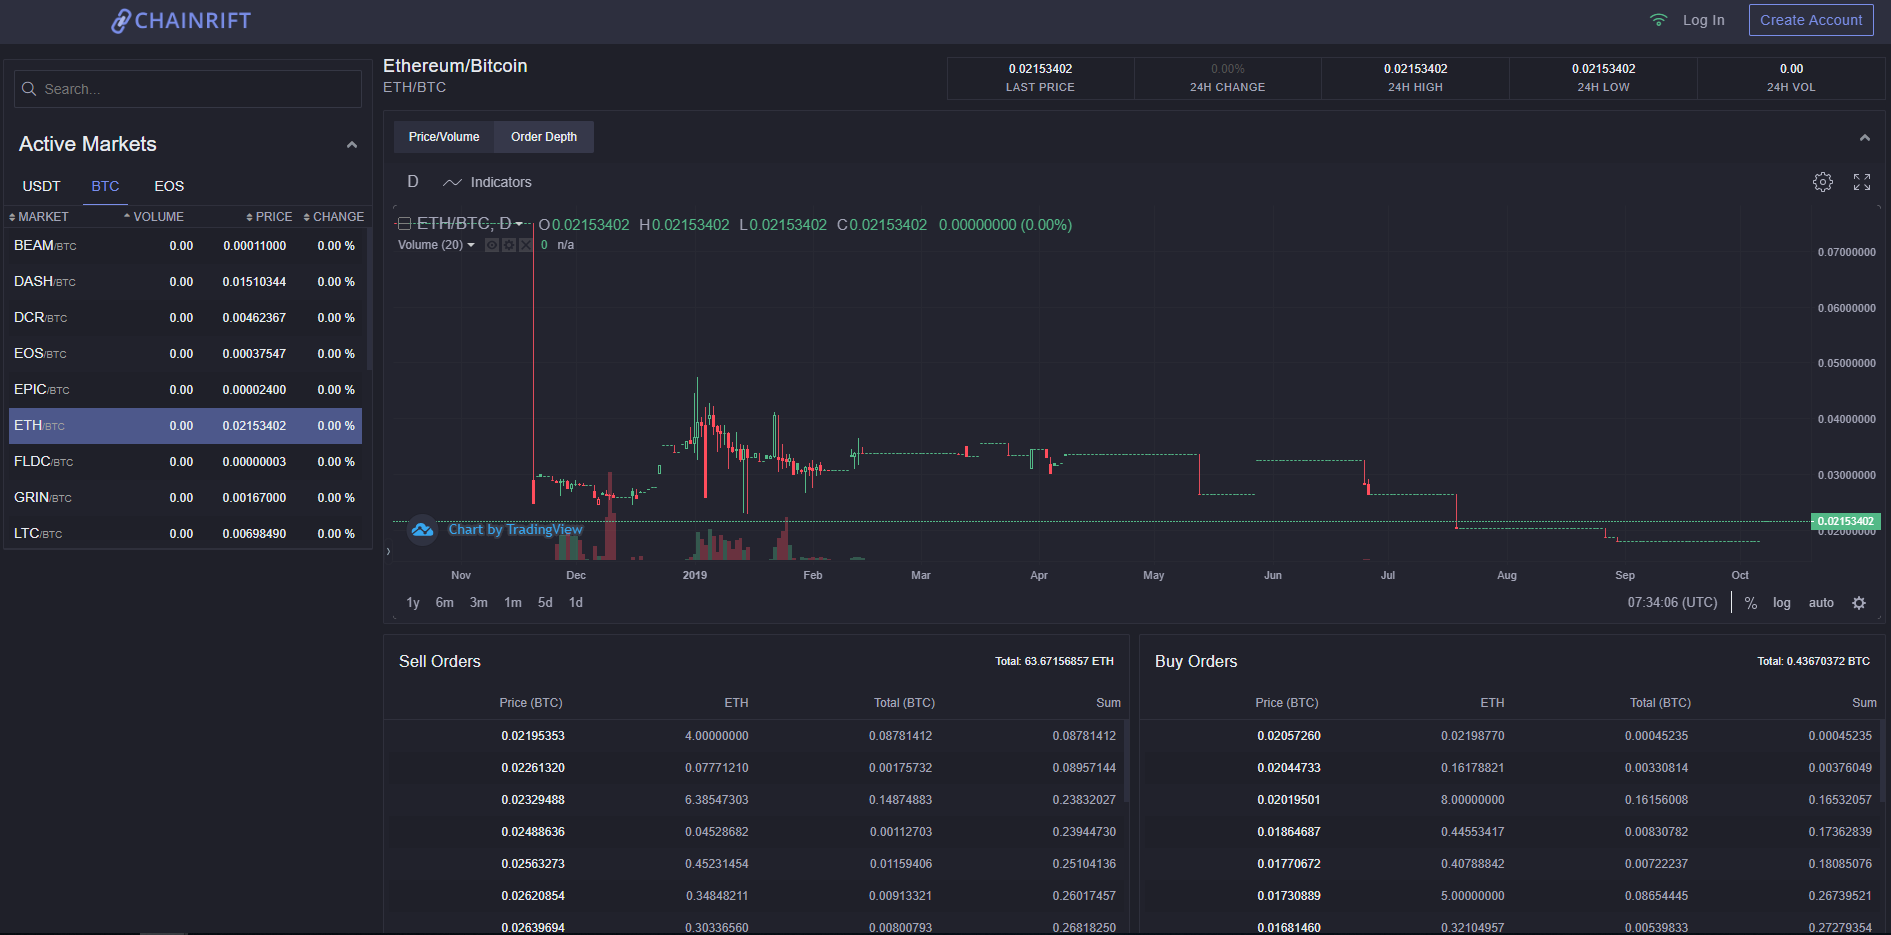 Chainrift Trading View